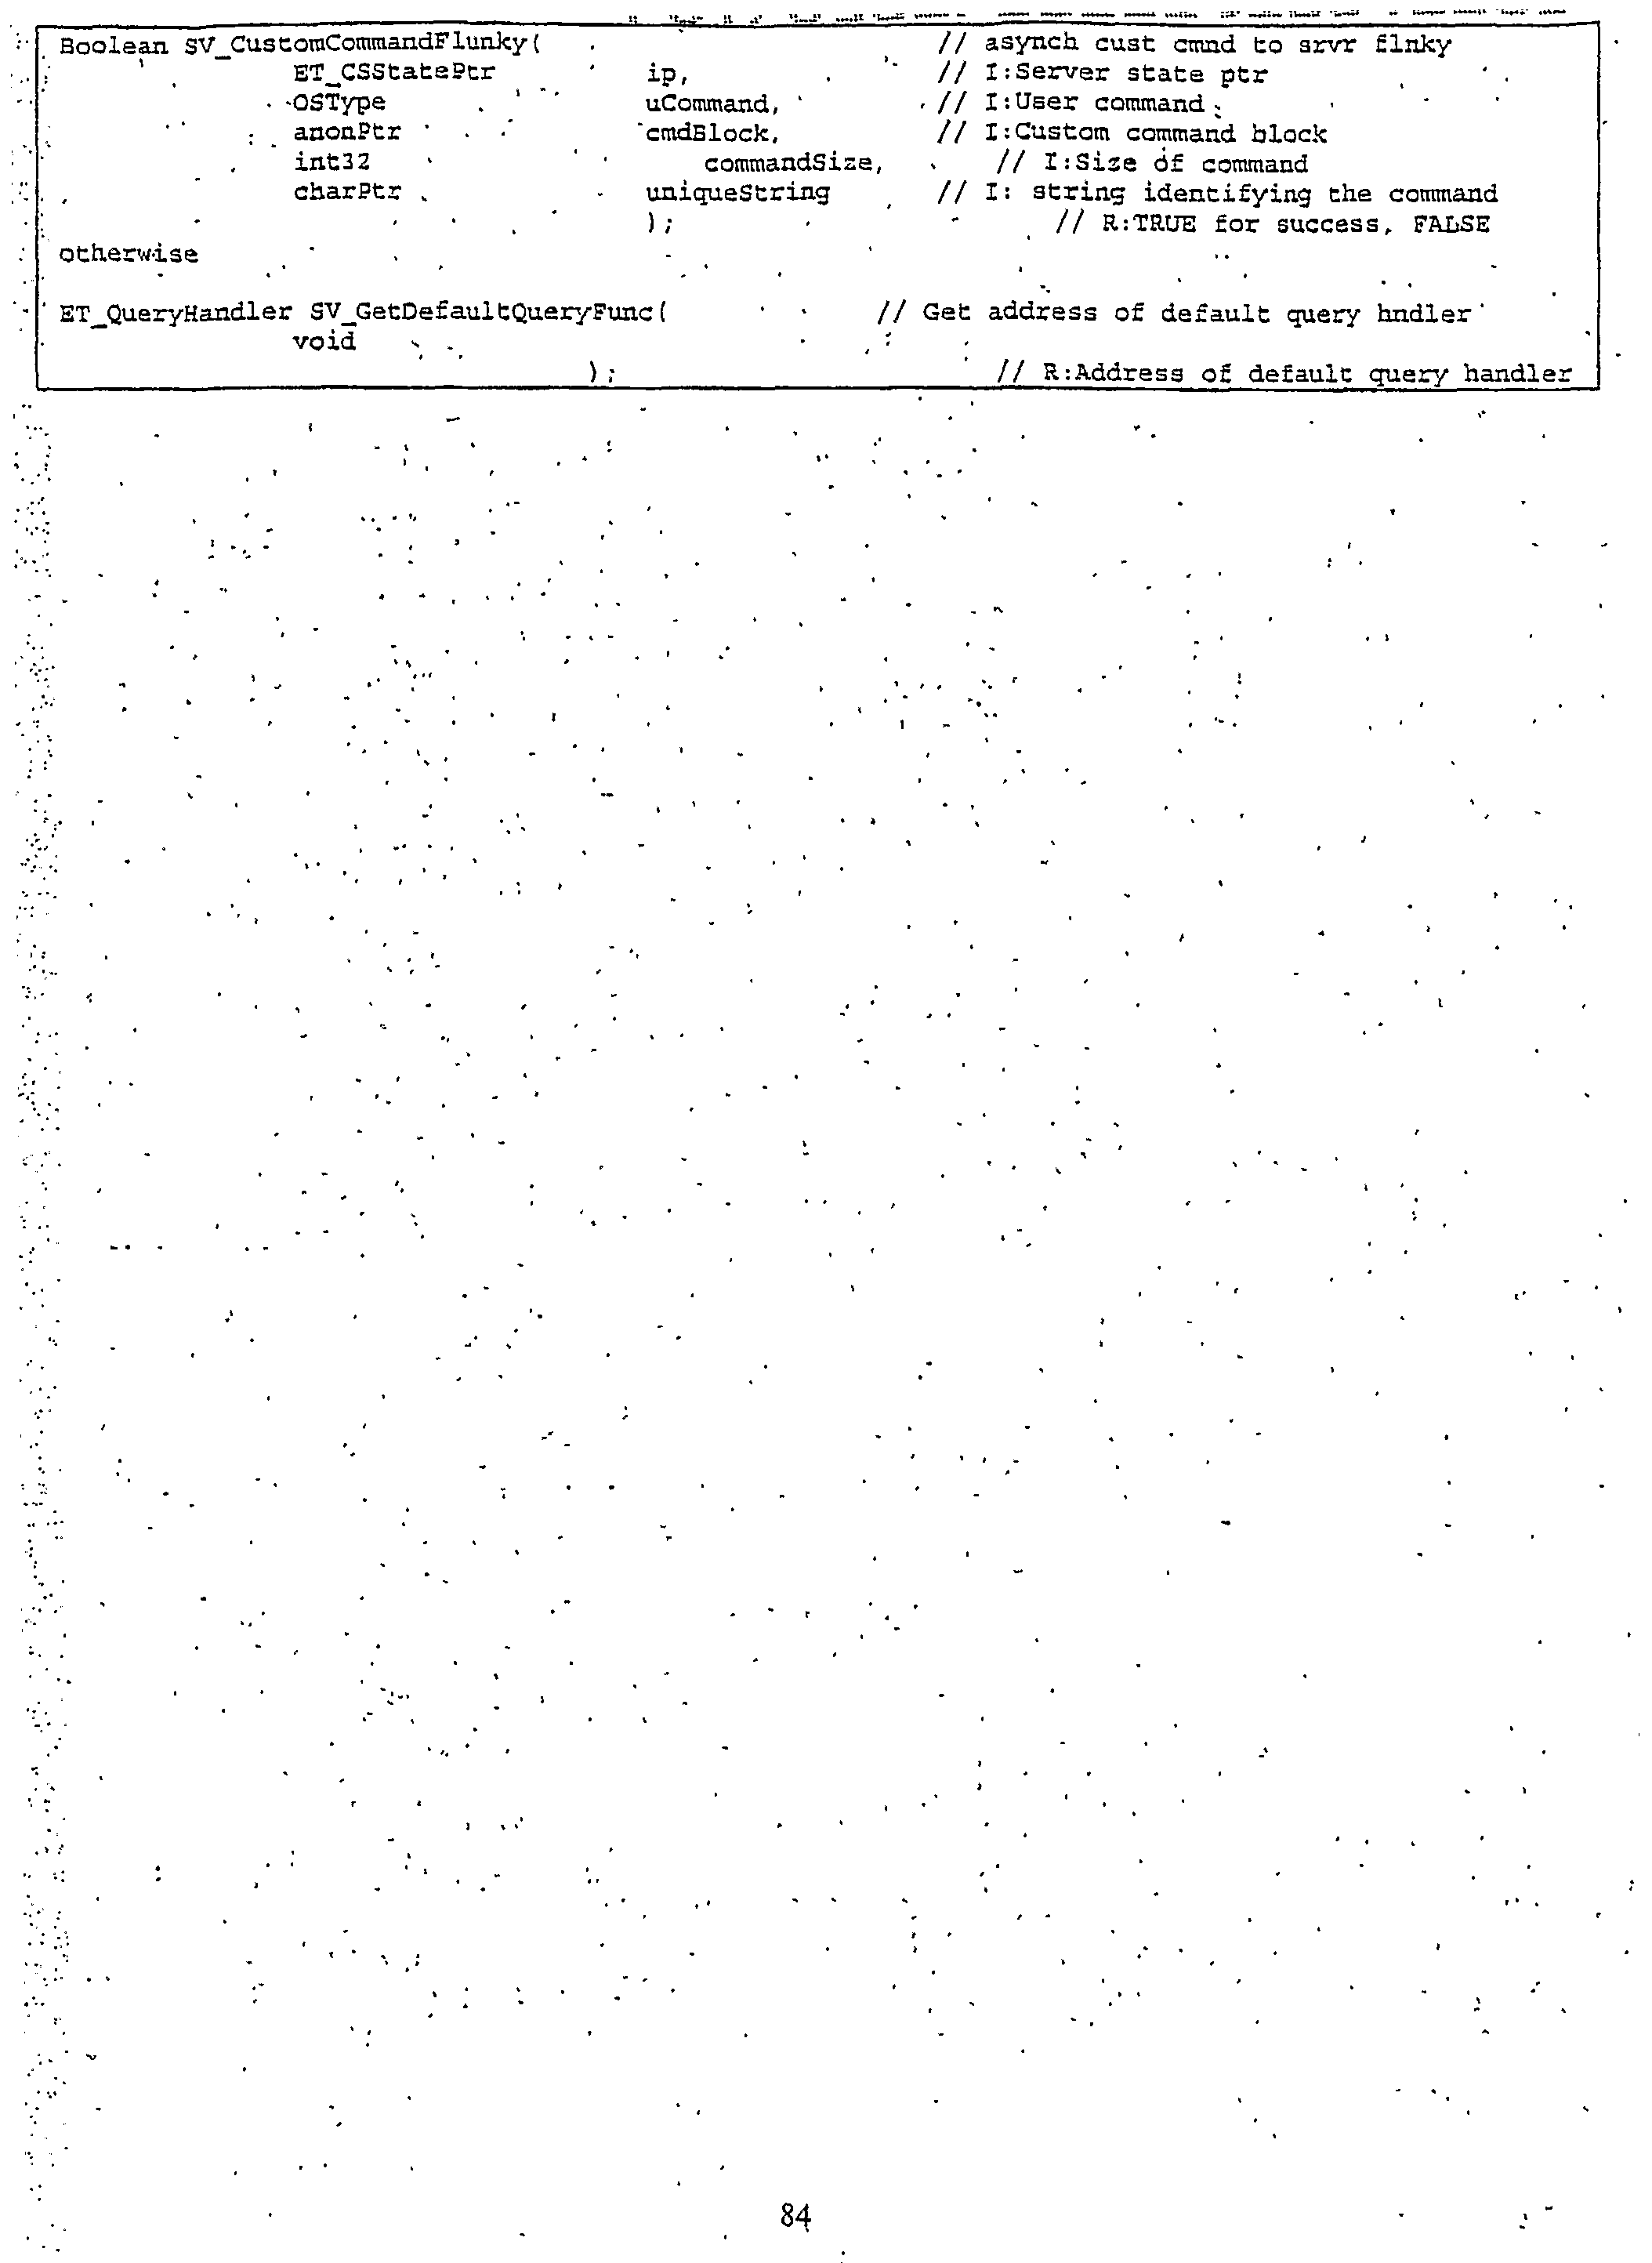 WO2003065180A2 - System and method for creating a distributed